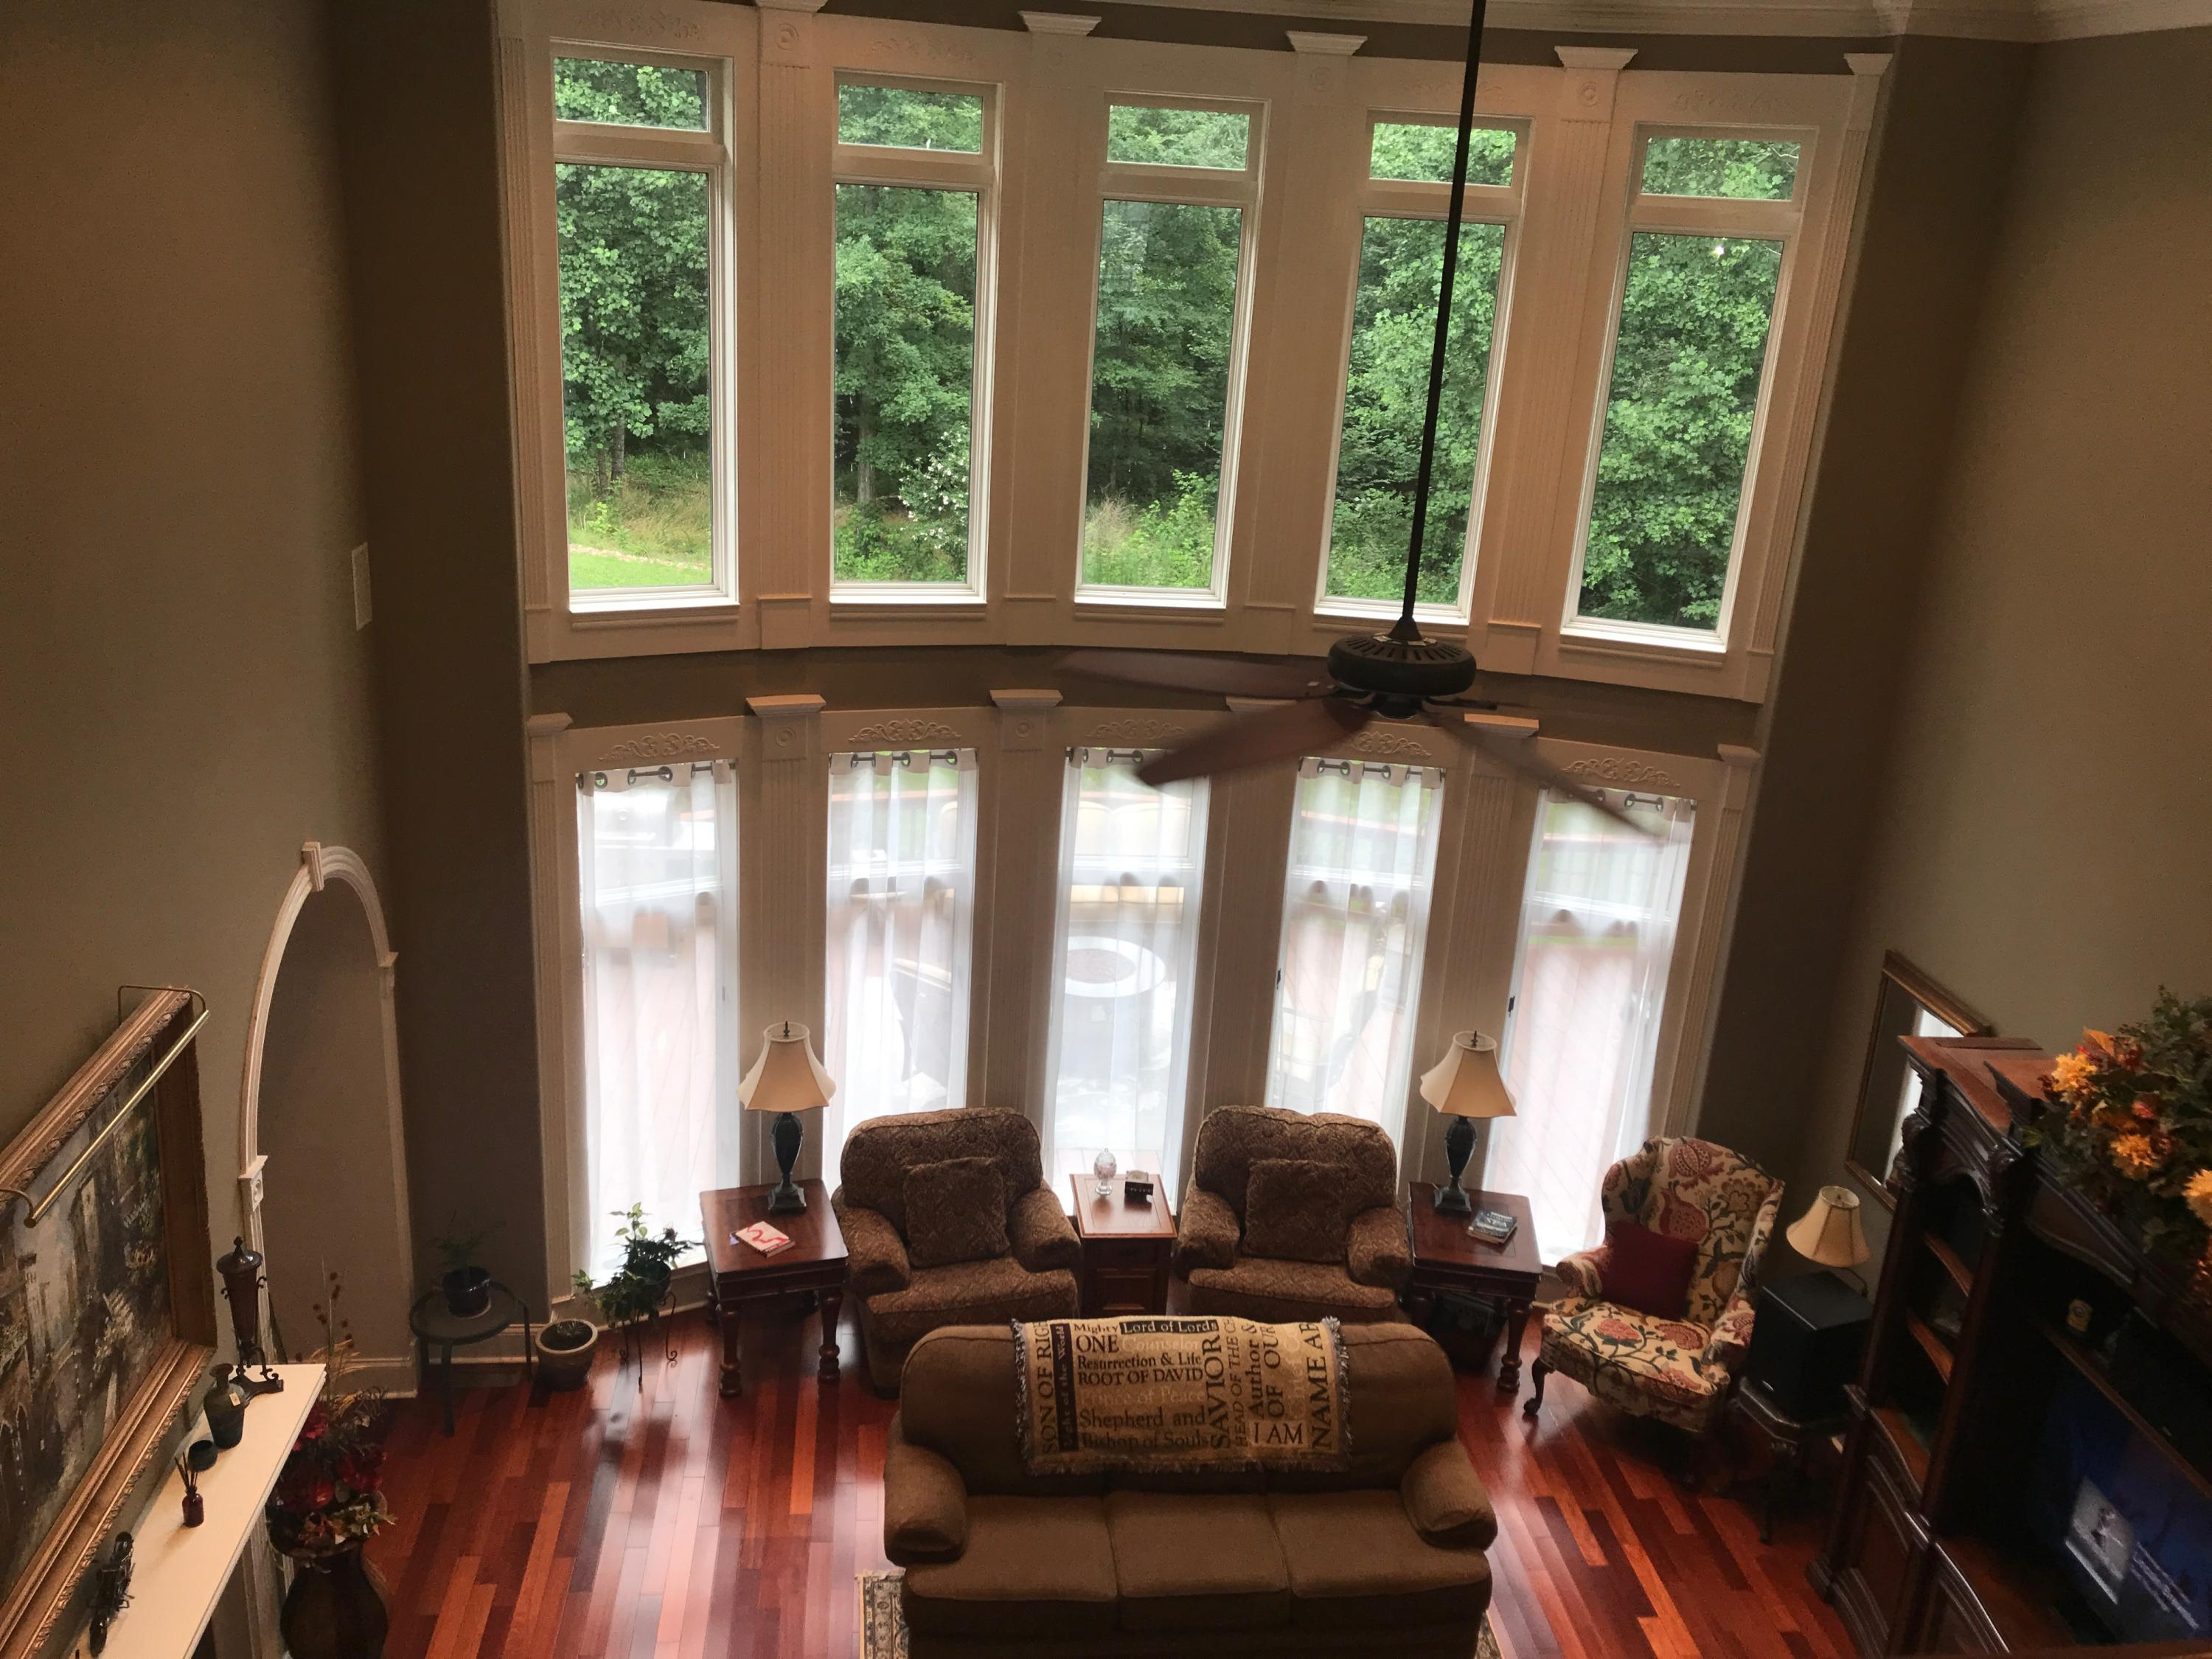 505 Paragon Pkwy, Cleveland, Tennessee 37312, 5 Bedrooms Bedrooms, ,5 BathroomsBathrooms,Single Family,For Sale,Paragon,1121672